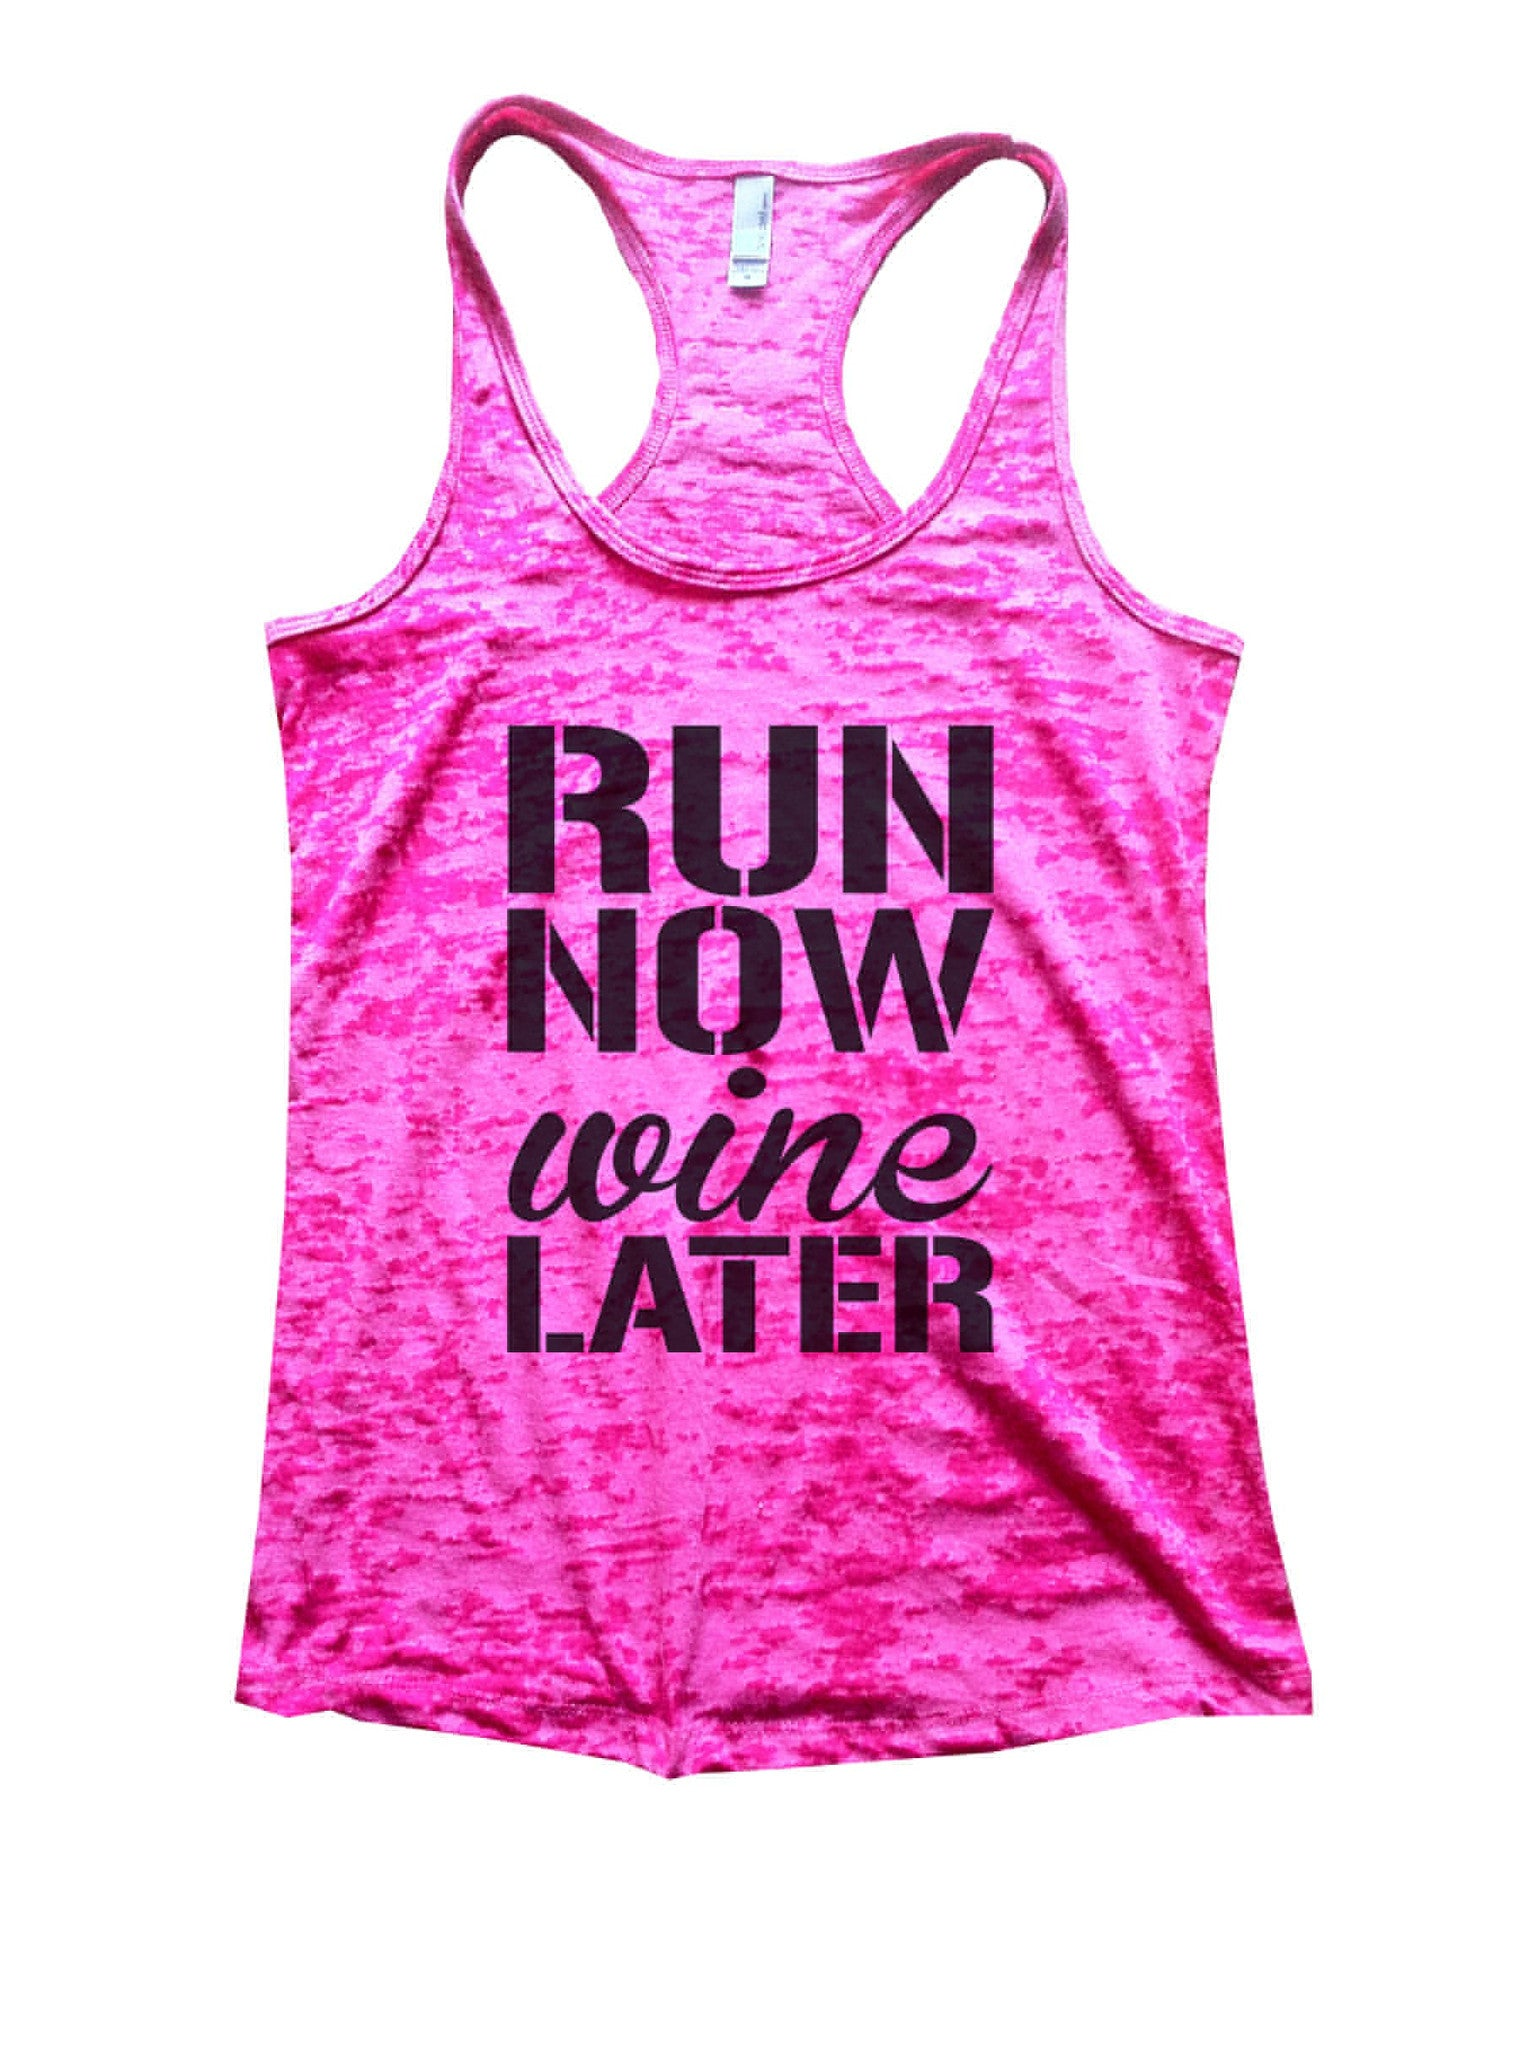 Run Now Wine Later Burnout Tank Top By BurnoutTankTops.com - 951 - Funny Shirts Tank Tops Burnouts and Triblends  - 4